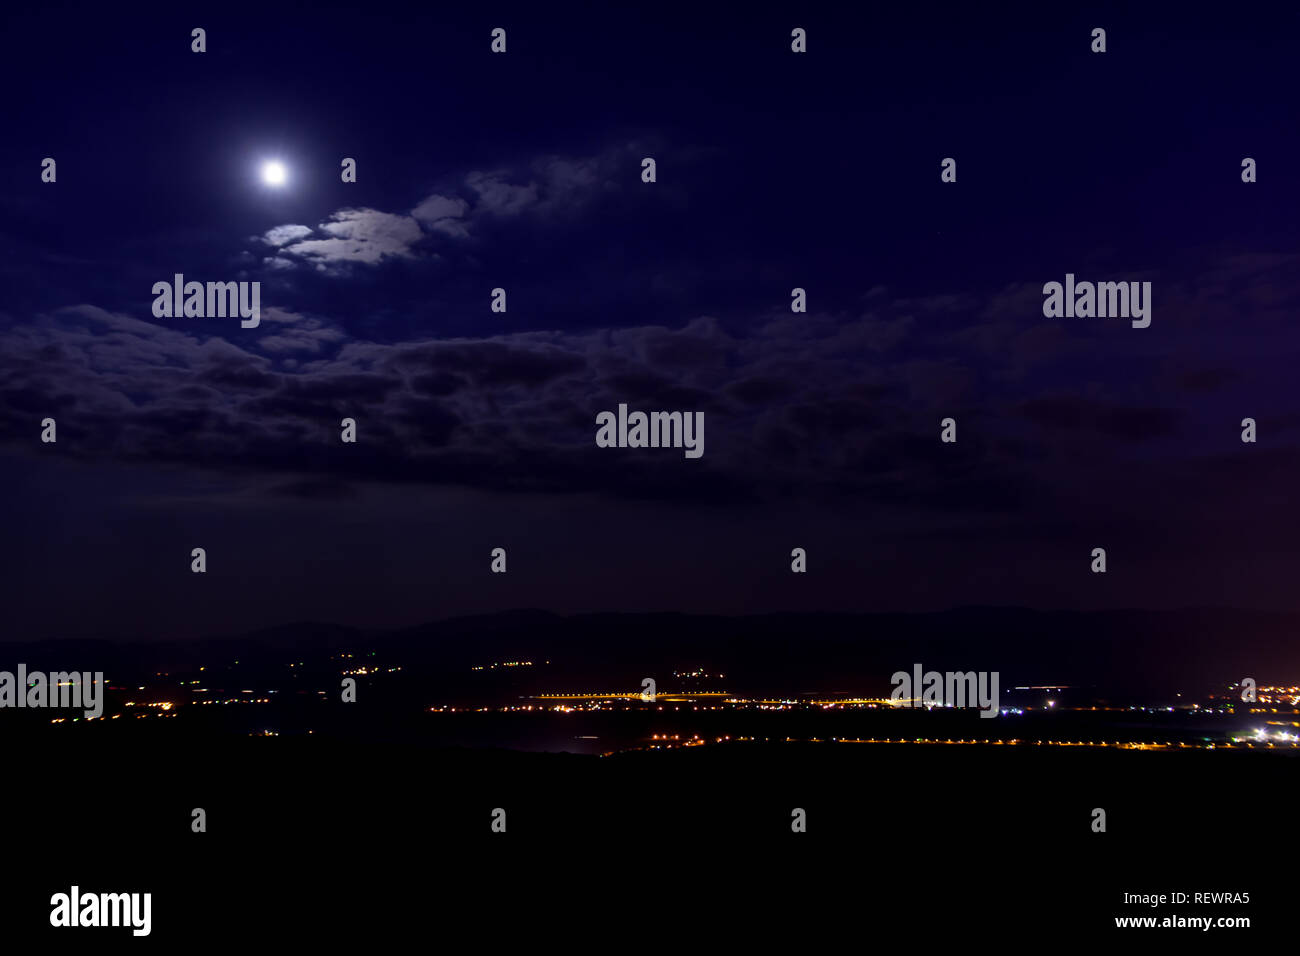 Night cityscape of town Pirot in Serbia. Moon that illuminates blue almost violet clouds, street lights can be seen at the base of the city. - Stock Image